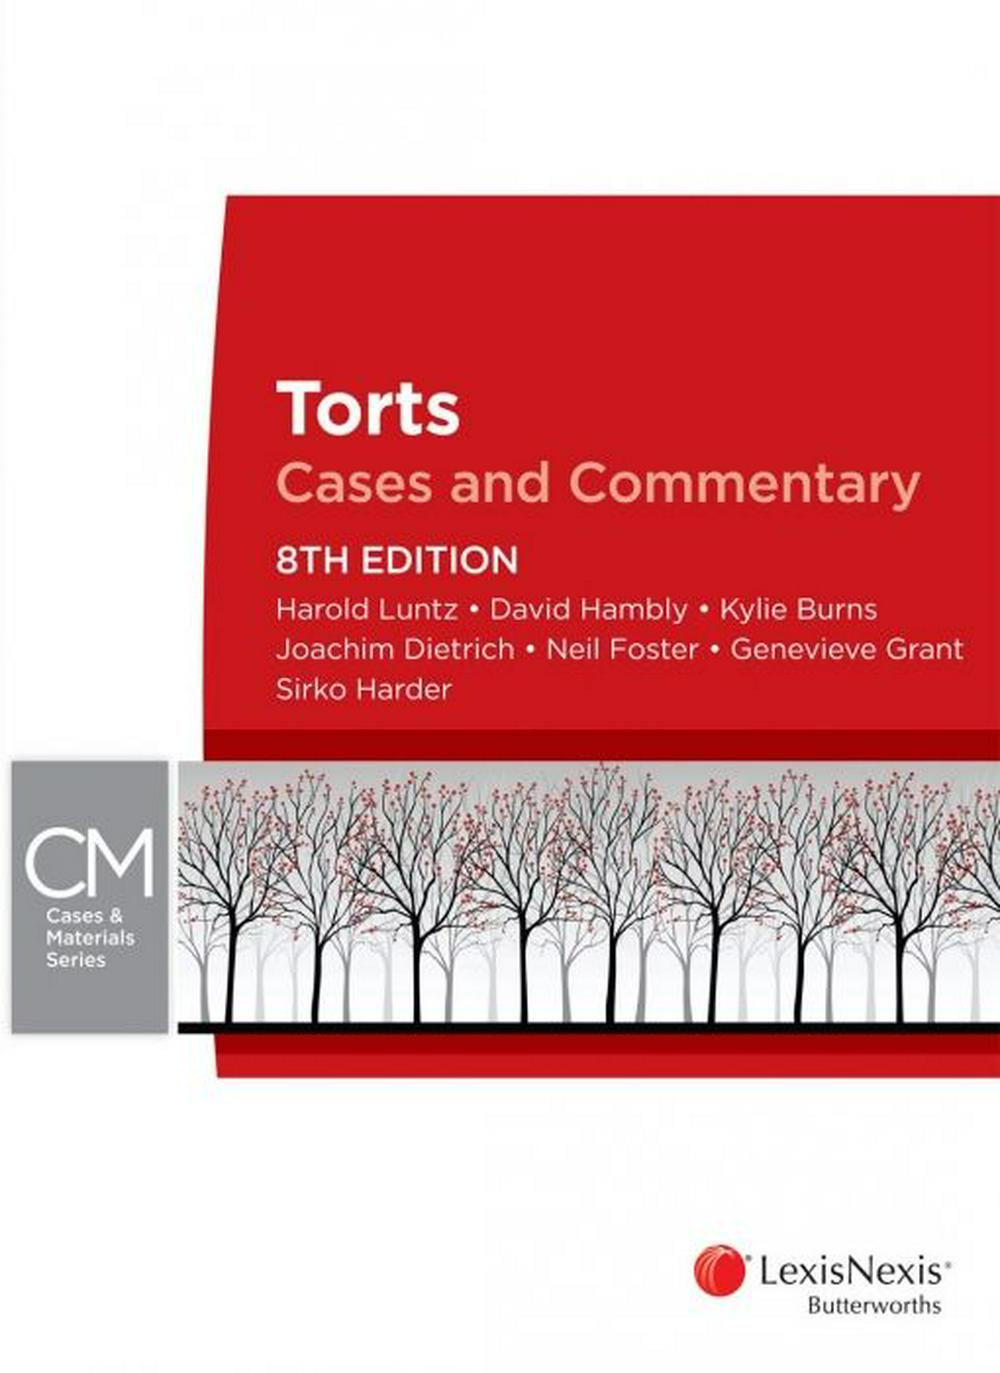 TortsCases and Commentary, 8th edition